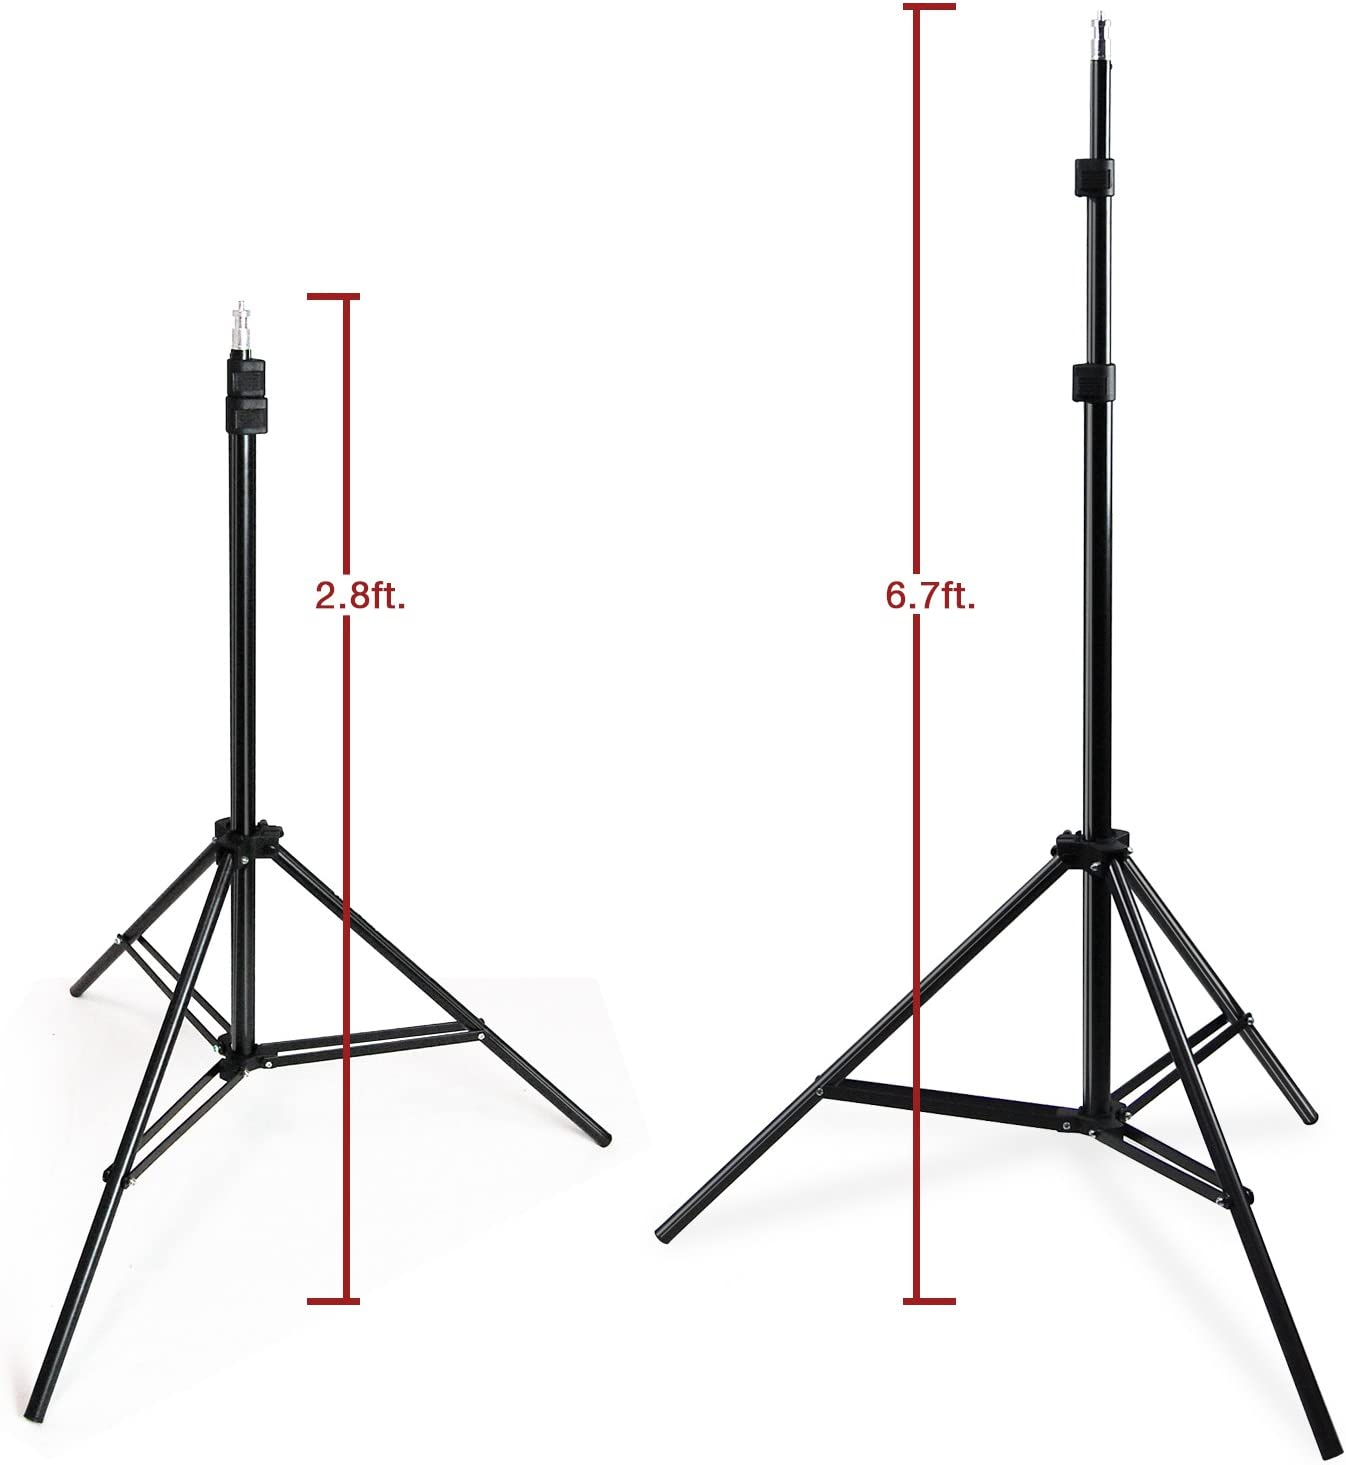 AGG2695 LimoStudio Adjustable Photography Studio Light Stand with 86.5 Max Height and Convenient Carry Case Bag for Photo Video Lights and Equipment